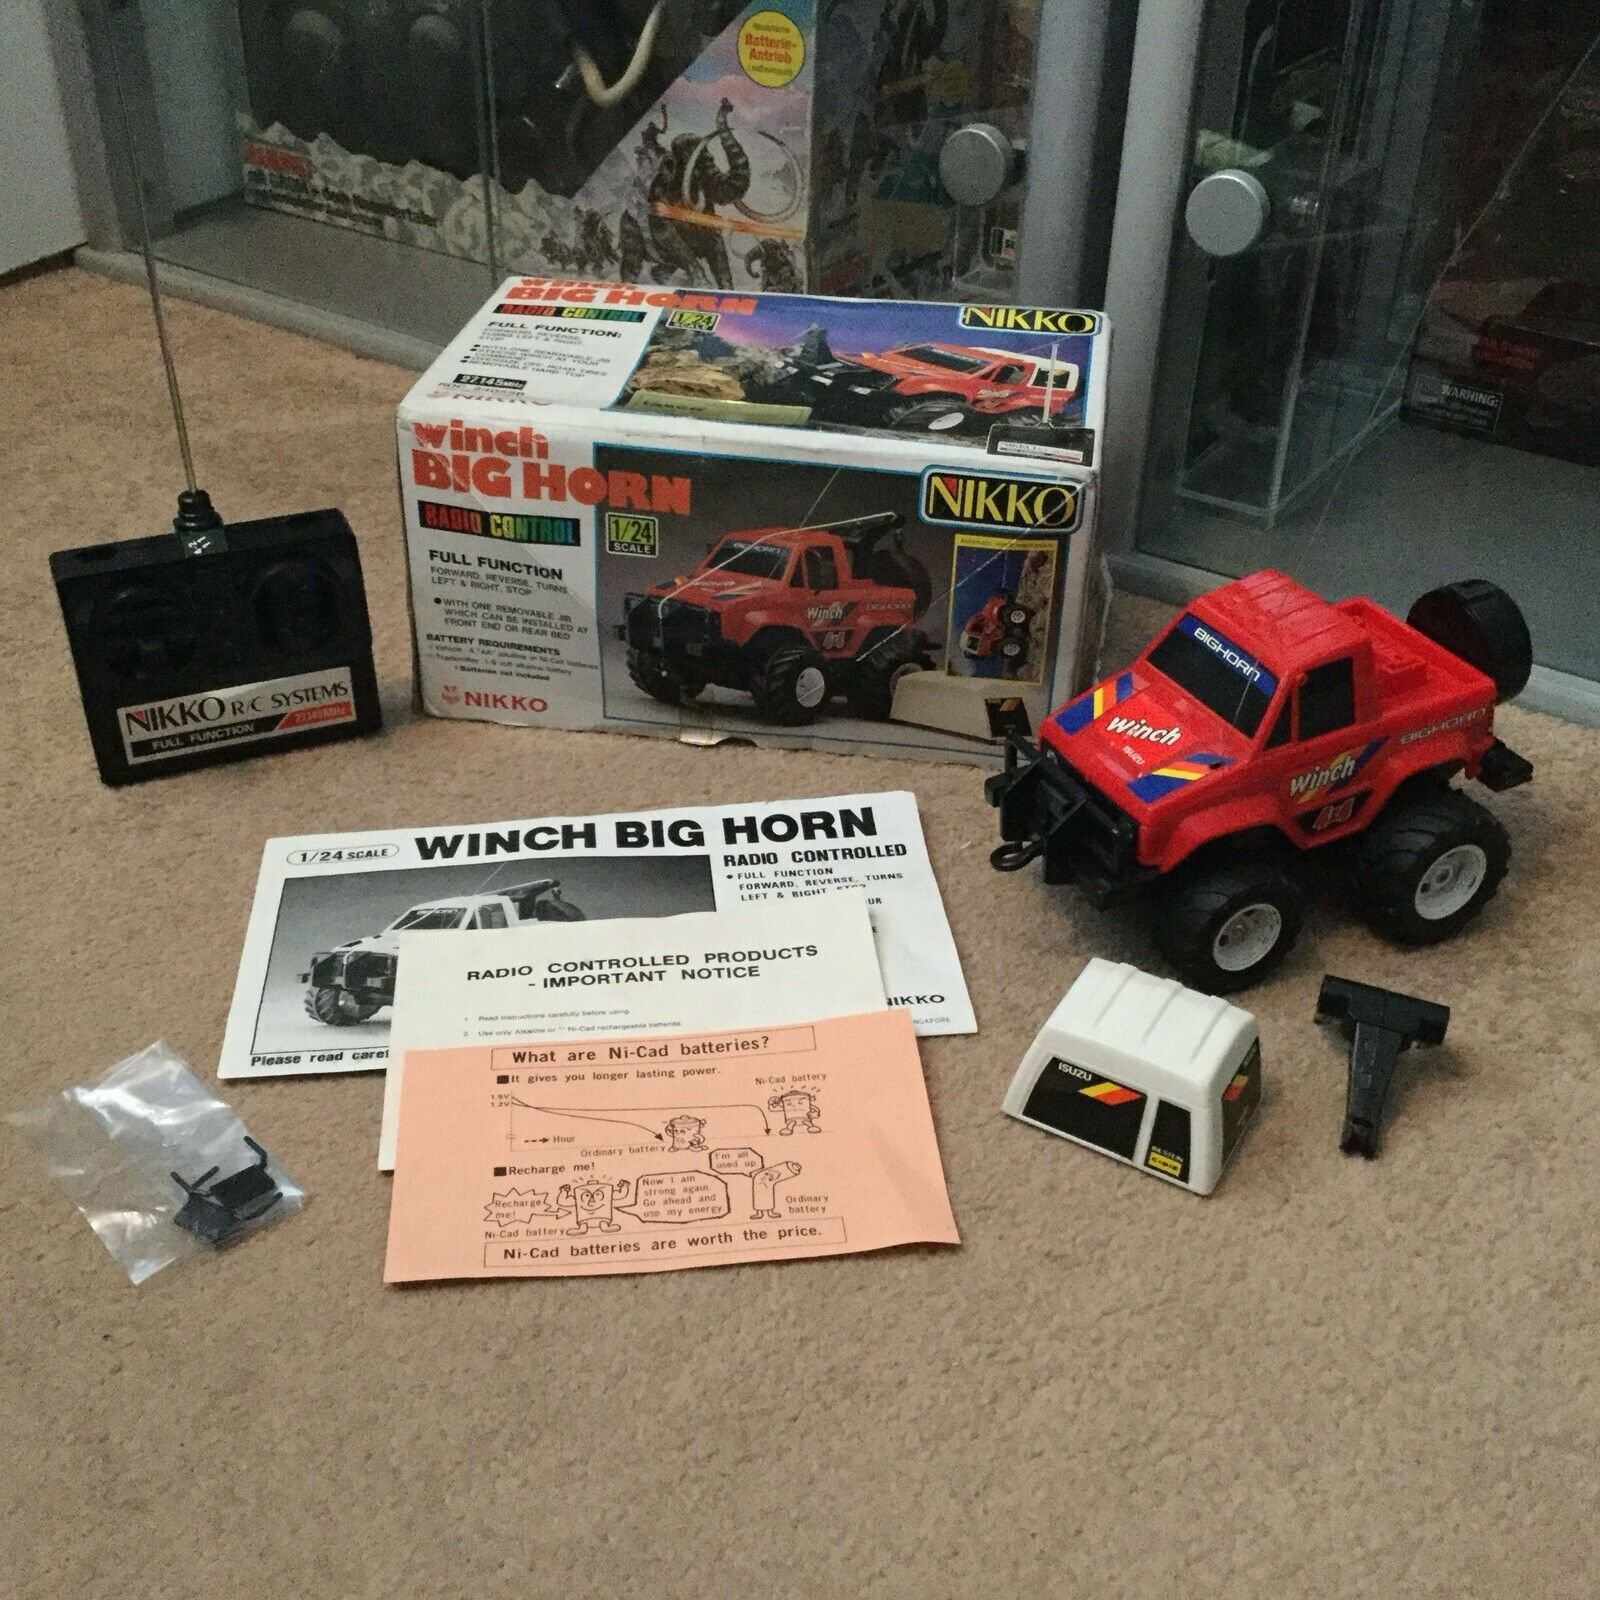 Nikko Winch Big Horn 1 24 RC Remote Control Car Complete VGC Complete Boxed 1986